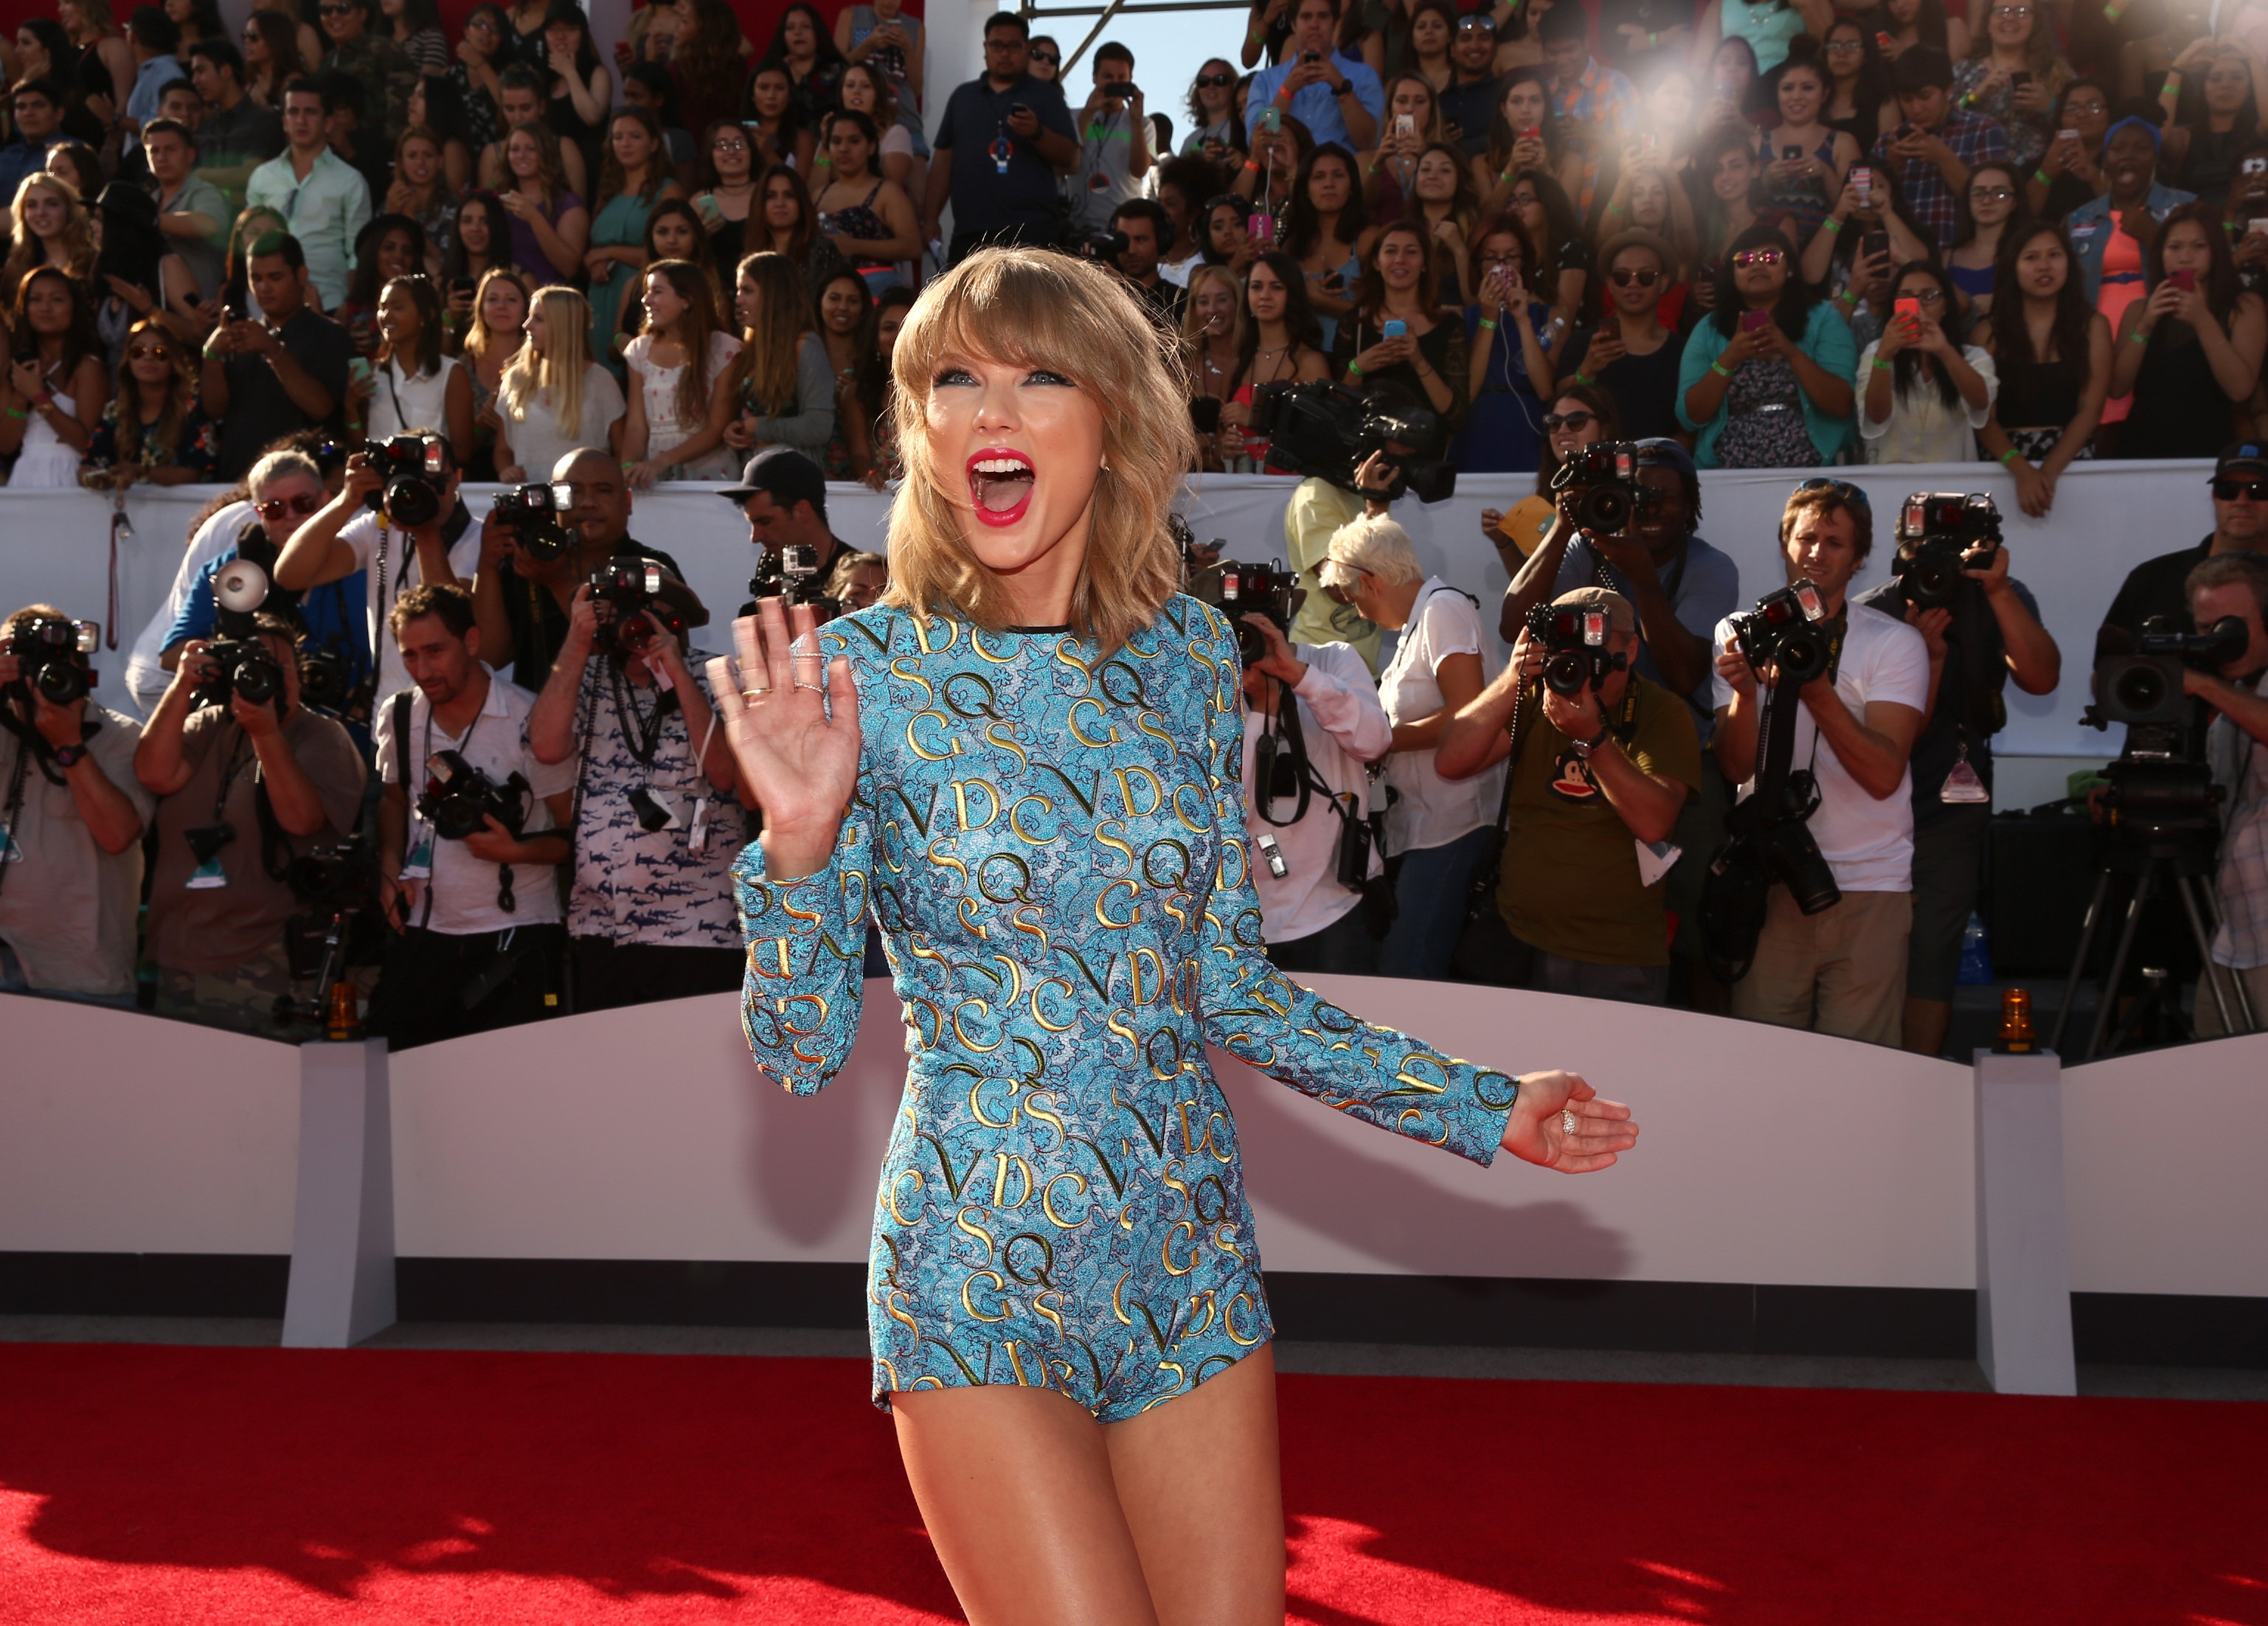 7 Reasons Taylor Swift S Shake It Off Became A Number 1 Hit Starting With Those Silly Dance Moves